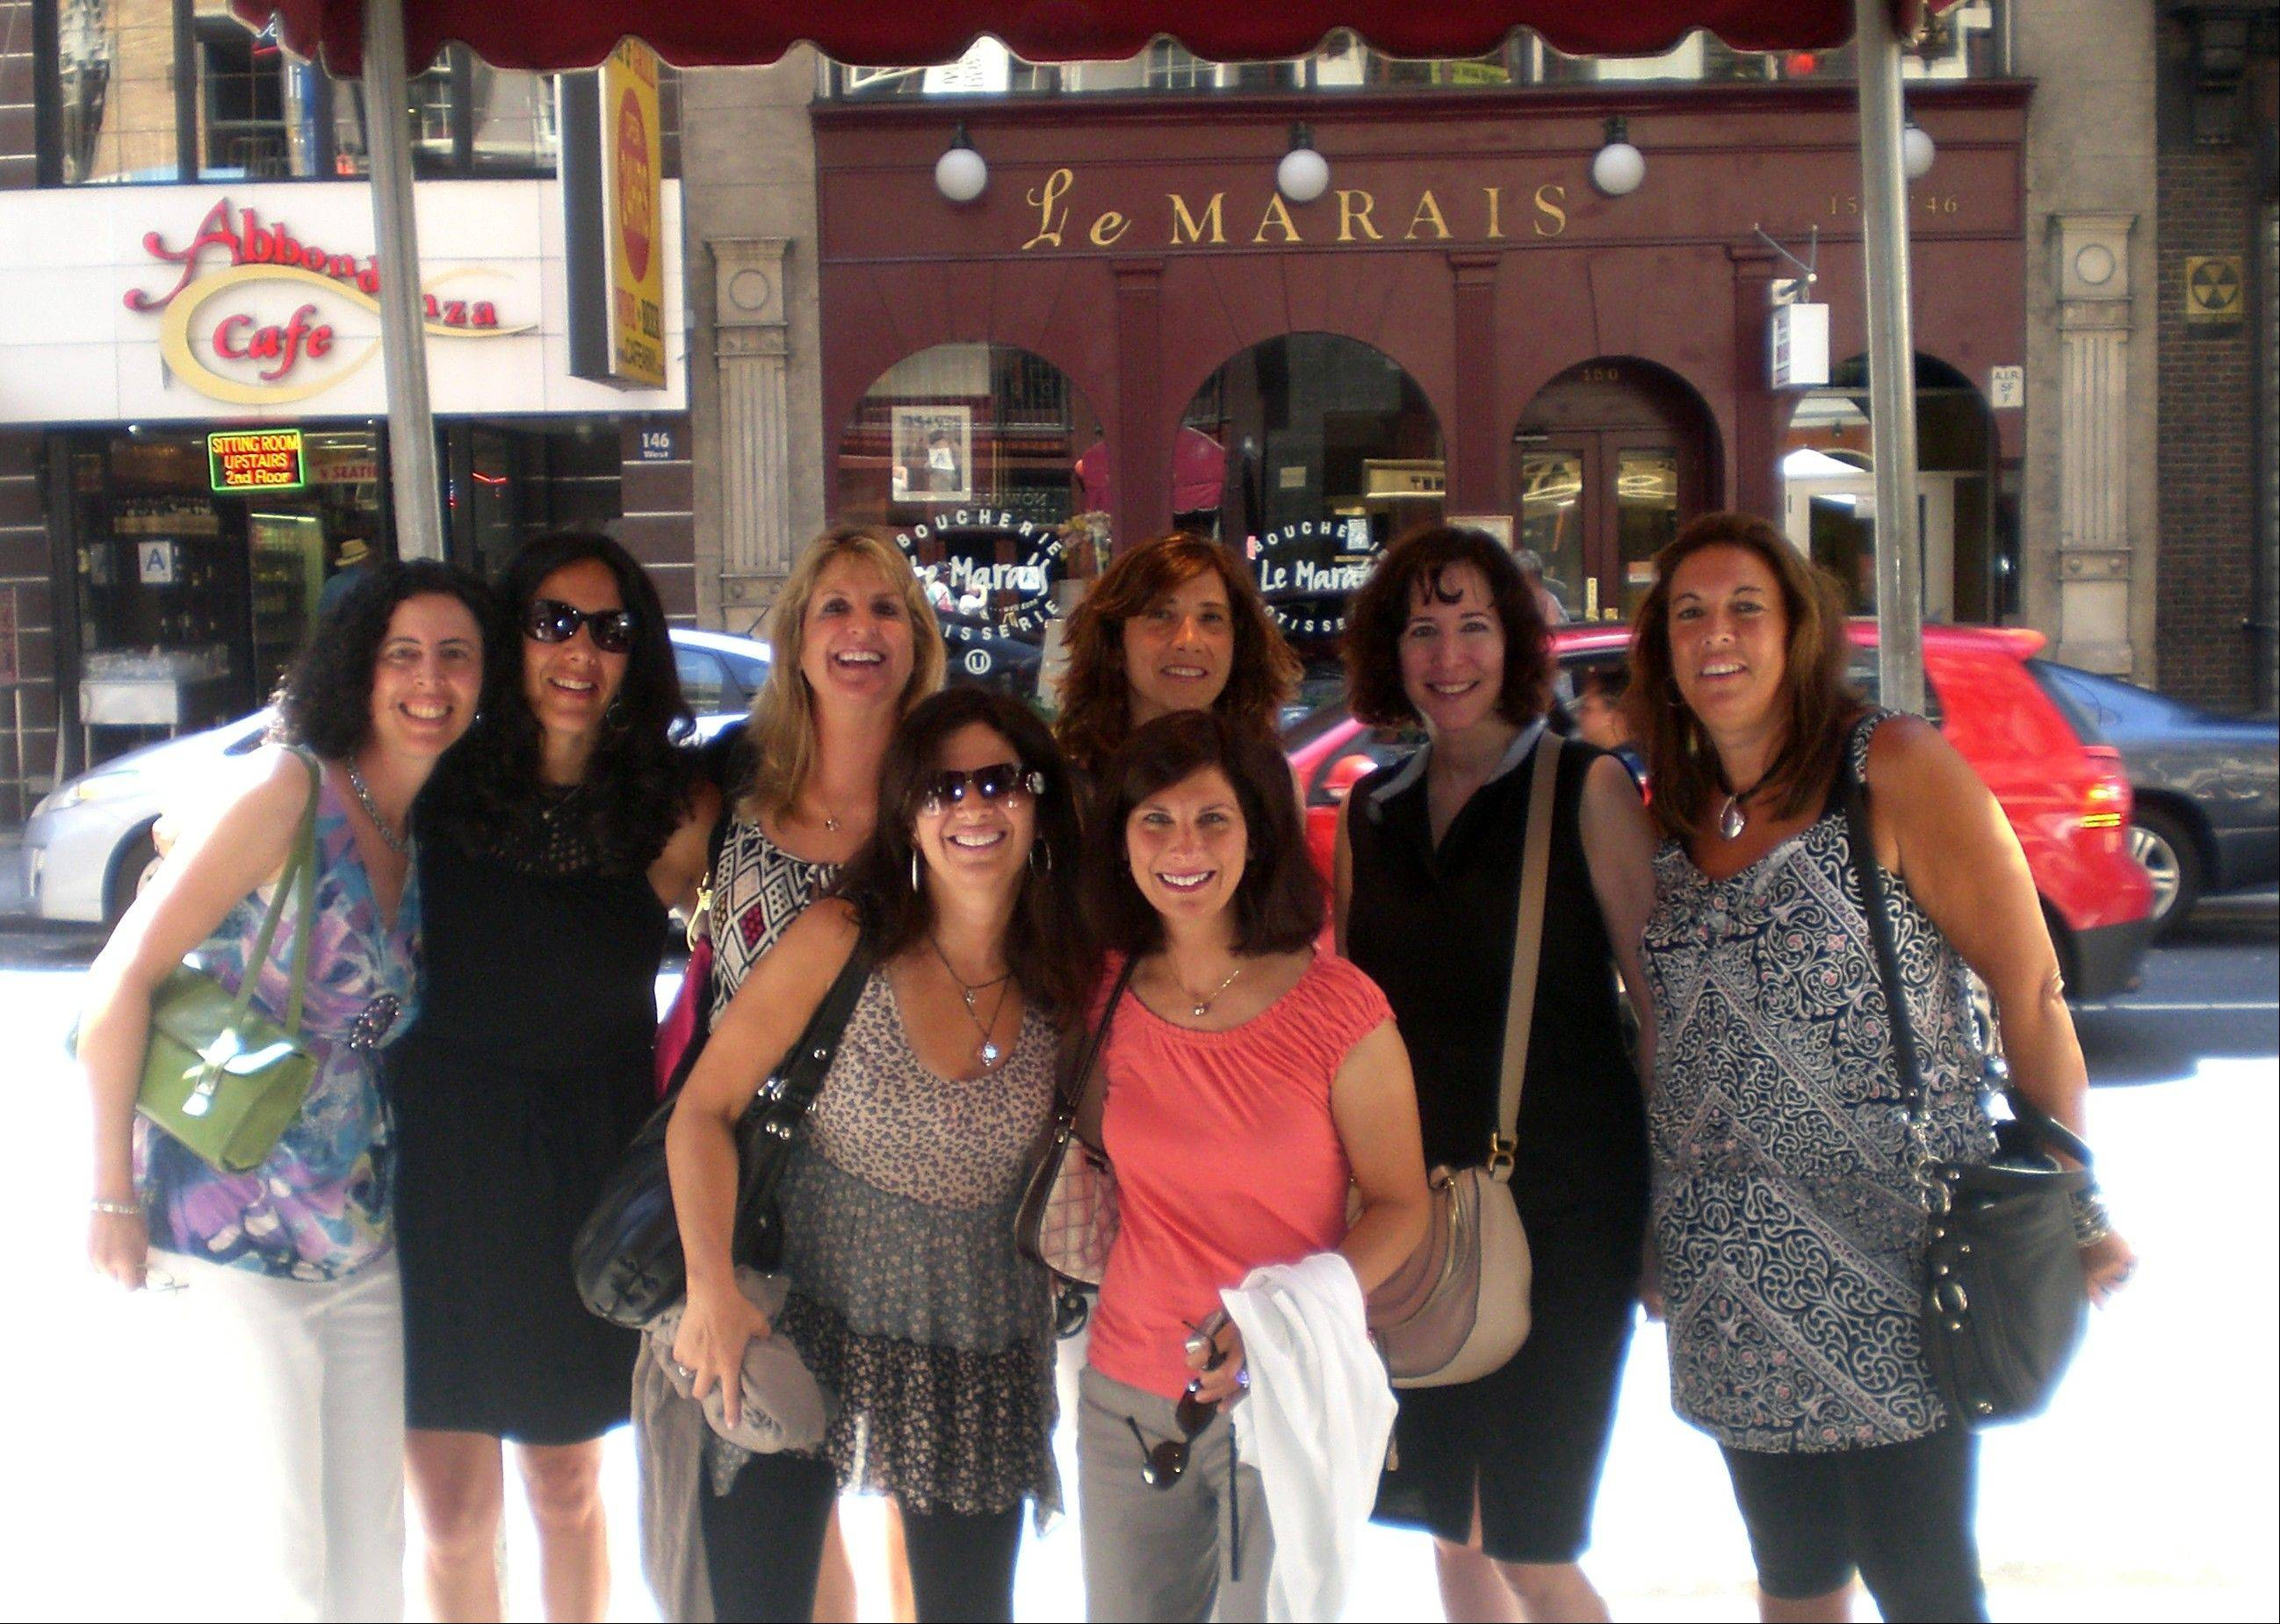 A group of friends -- back row from left, Susan Drechsler Rosenzweig, Laurie Stoller Birzon, Alice Sohne Meyer, Jodi Wechter Levy, Karen Silpe Morgenstern, Jill Hirschhorn Gordon and front row from left, Rhonda Sarter Gold and Sharon Stutman Miles -- celebrate in New York on July 30, 2011, after one of them proposed a reunion for their 50th birthday. Many baby boomers are marking milestone birthdays in a big way, with communal celebrations and elaborately planned parties.